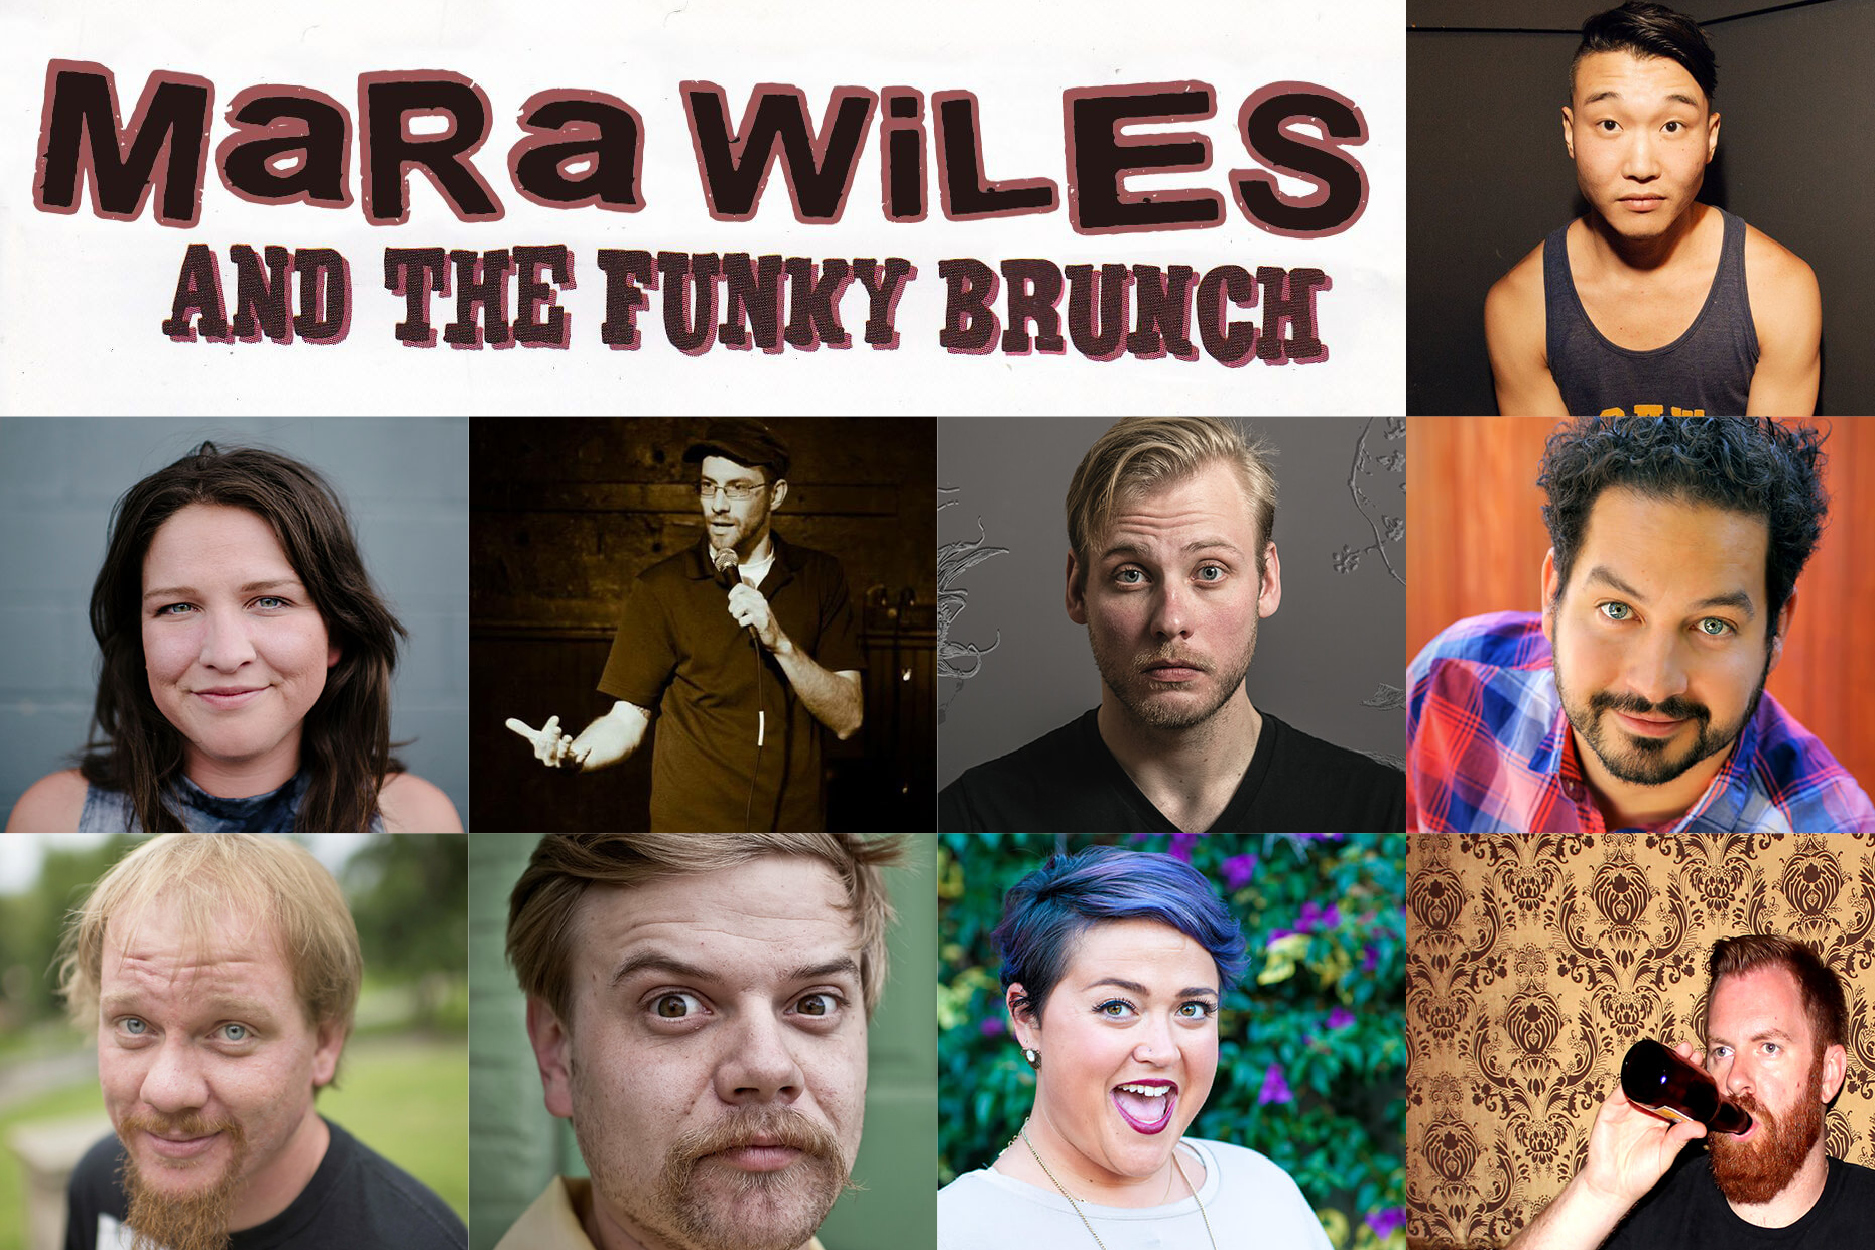 Mara Wiles & The Funky Brunch